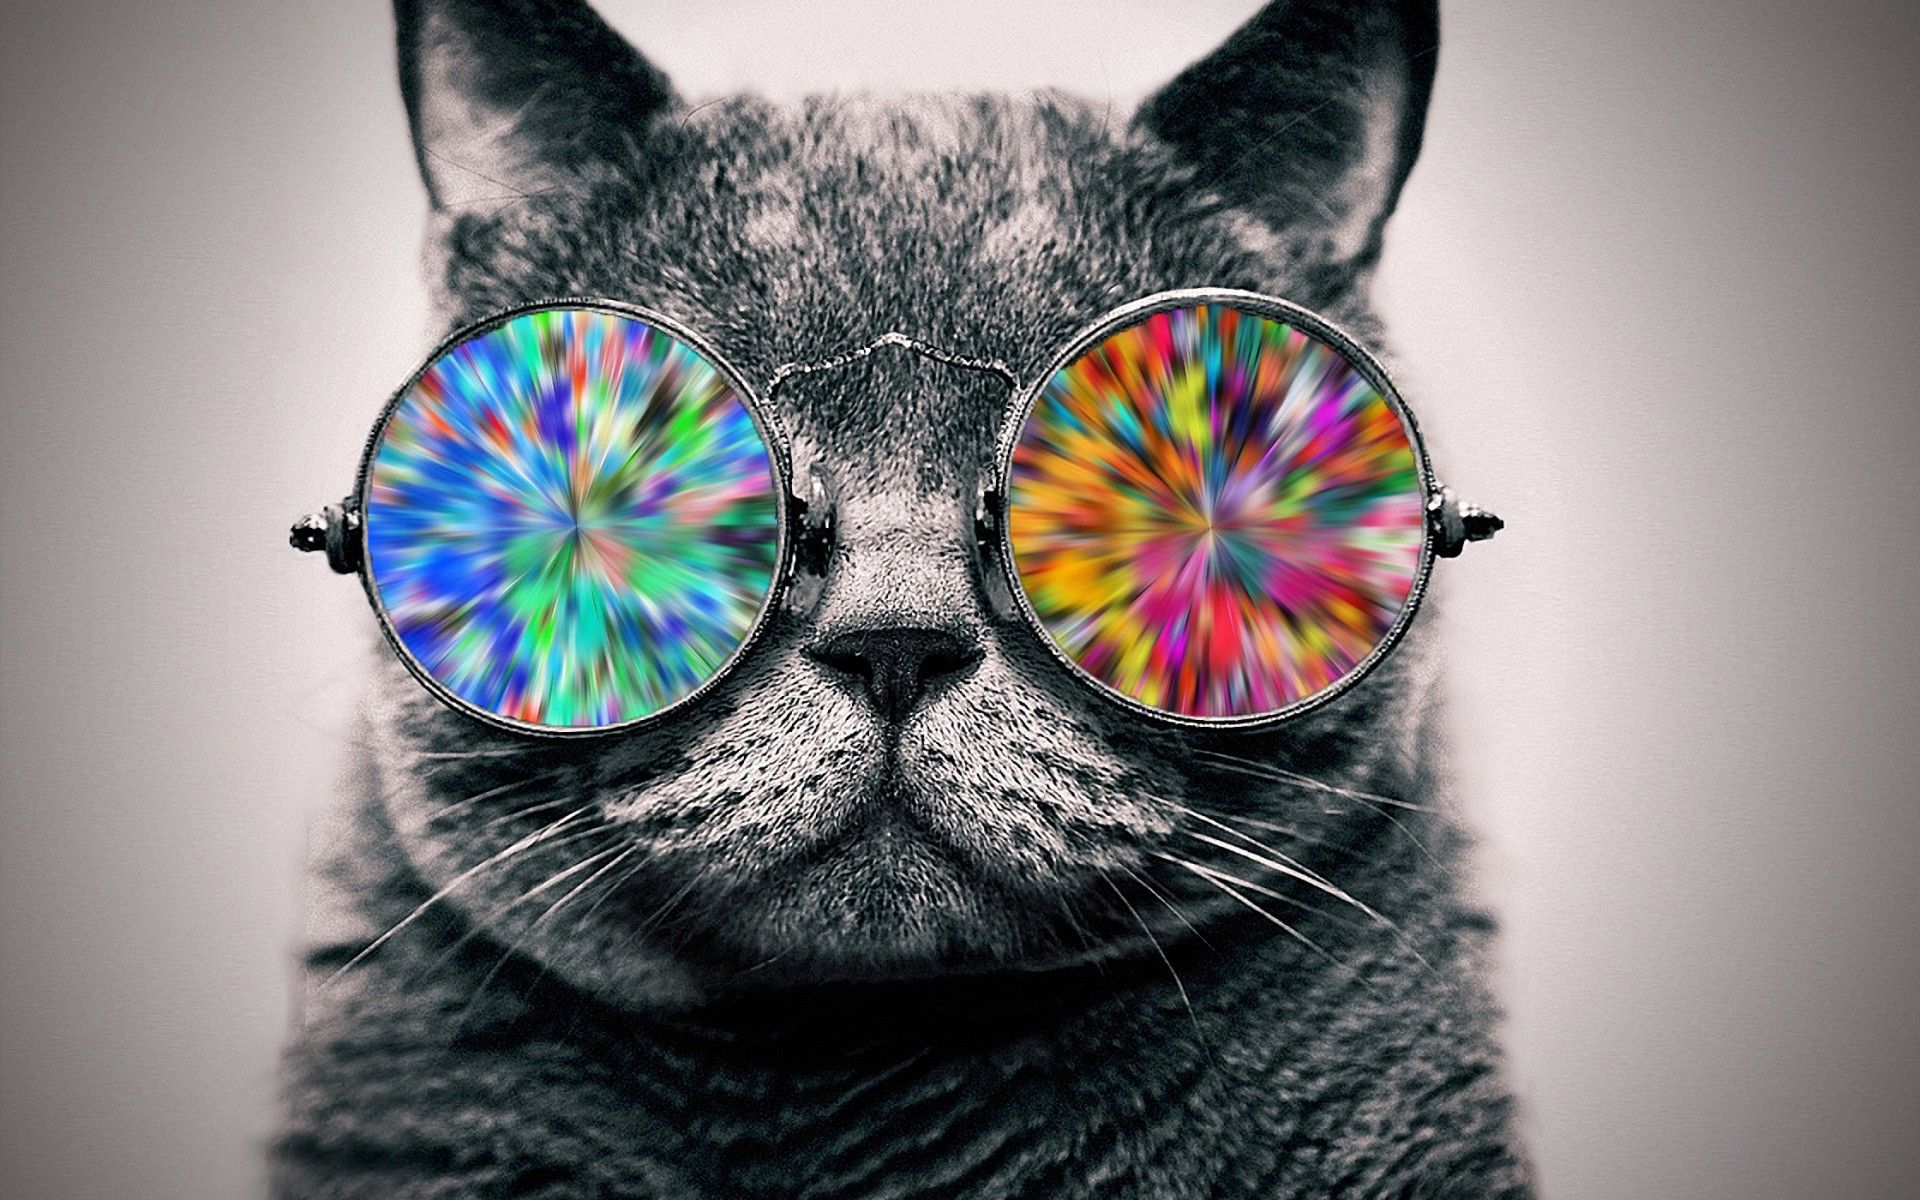 Cool Cat Supplies Cat Wearing Cool Eyeglasses Hd Wallpaper 19201080 See